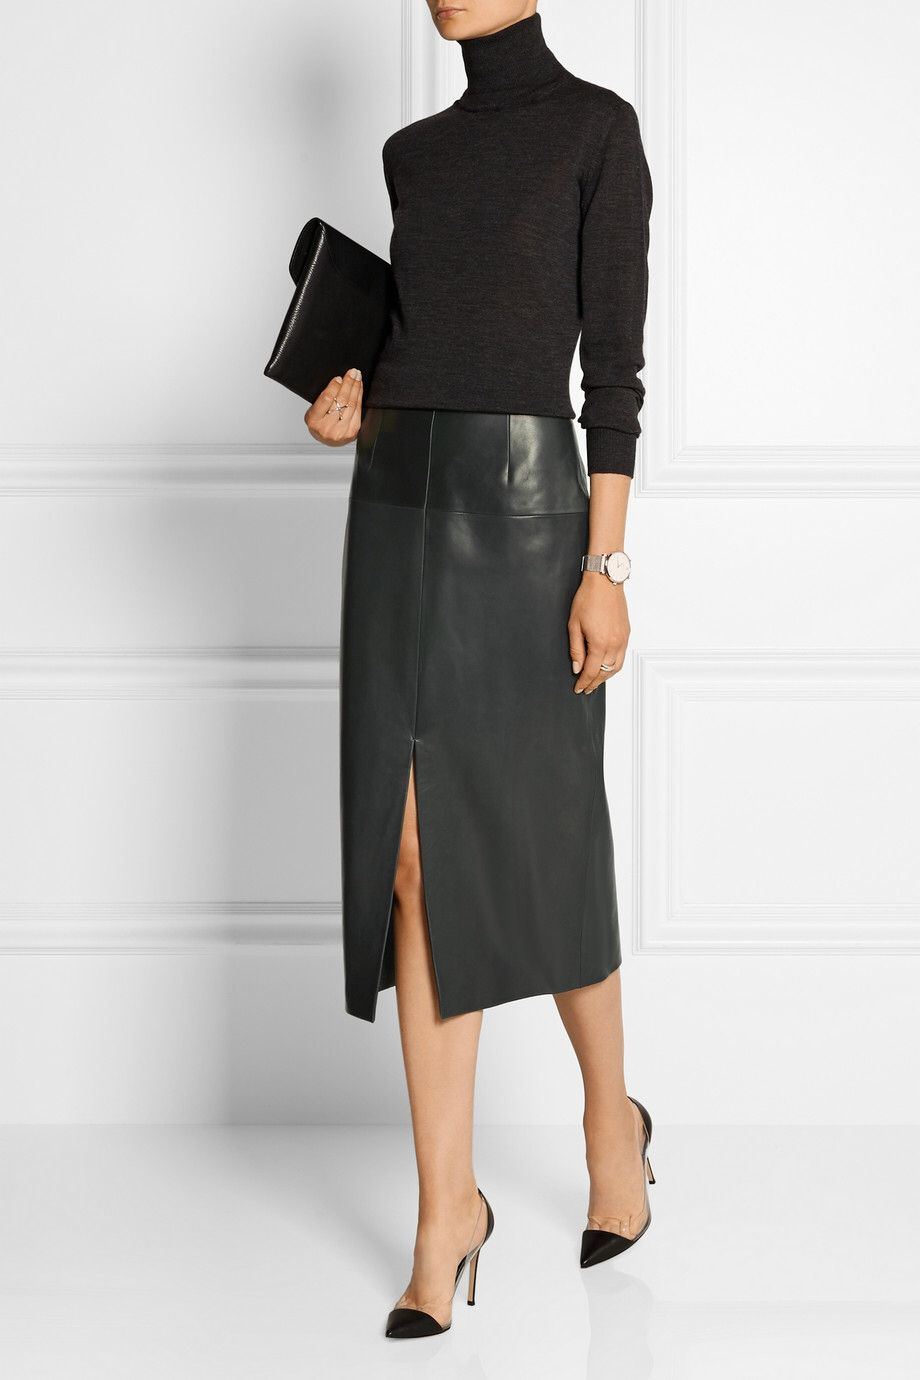 519271a94 JASON WU Leather pencil skirt $2,695.00 | Estilos | Moda para mujer ...